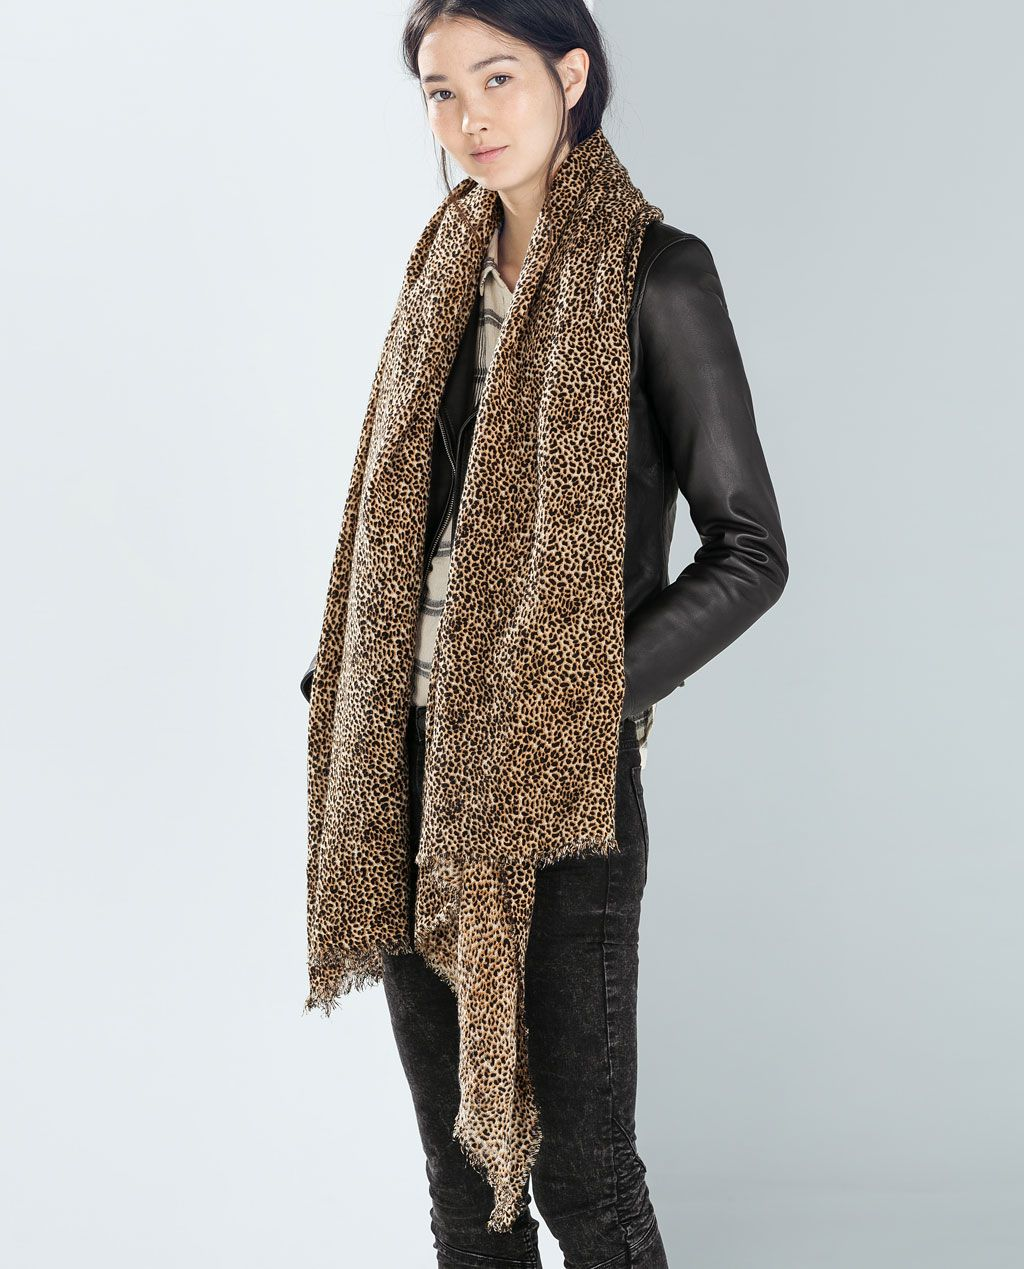 Buy Print leopard scarf zara picture trends